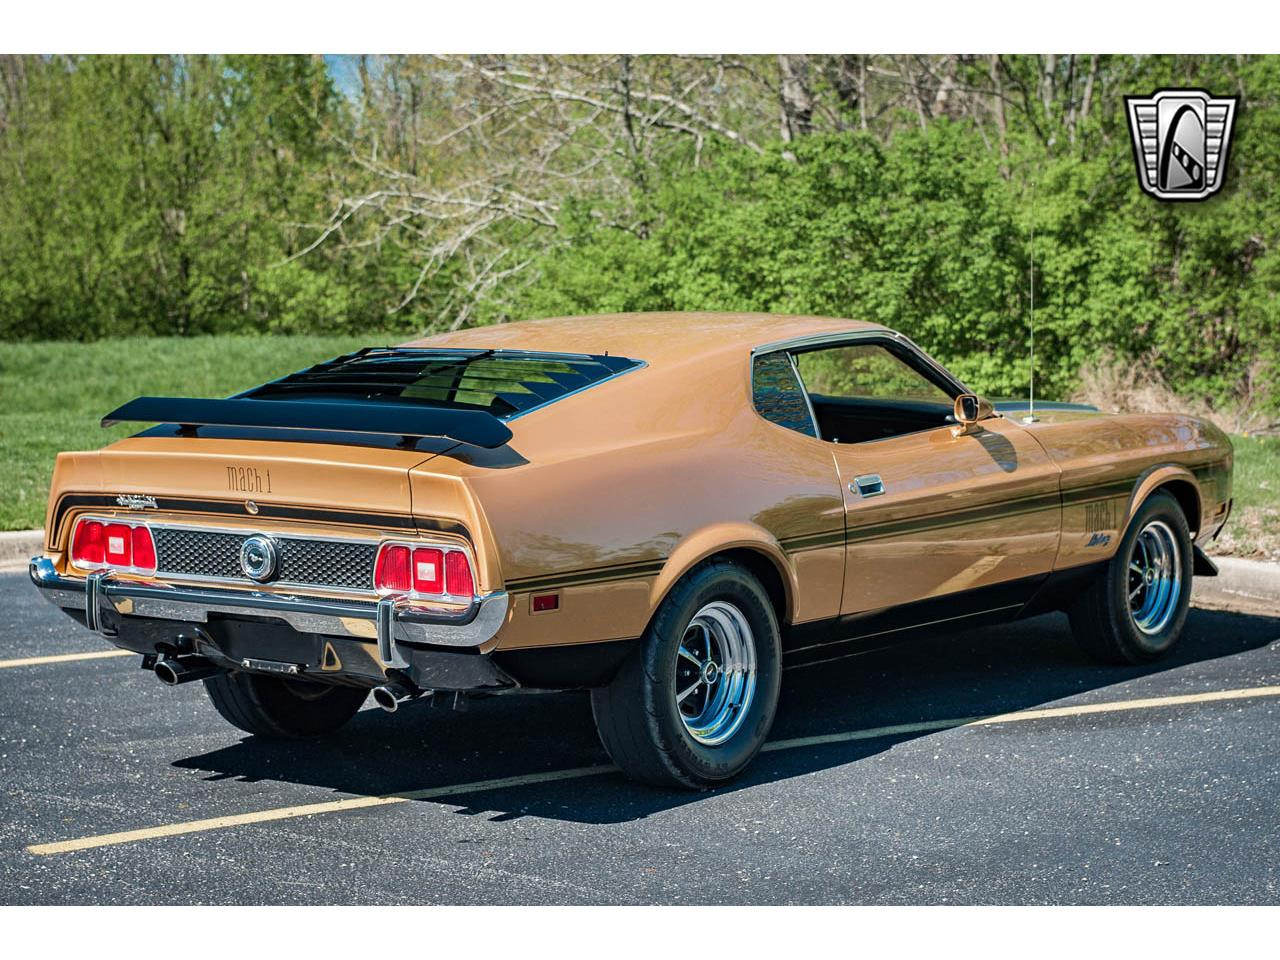 Large Picture of Classic 1973 Mustang - $34,500.00 Offered by Gateway Classic Cars - St. Louis - QB8T